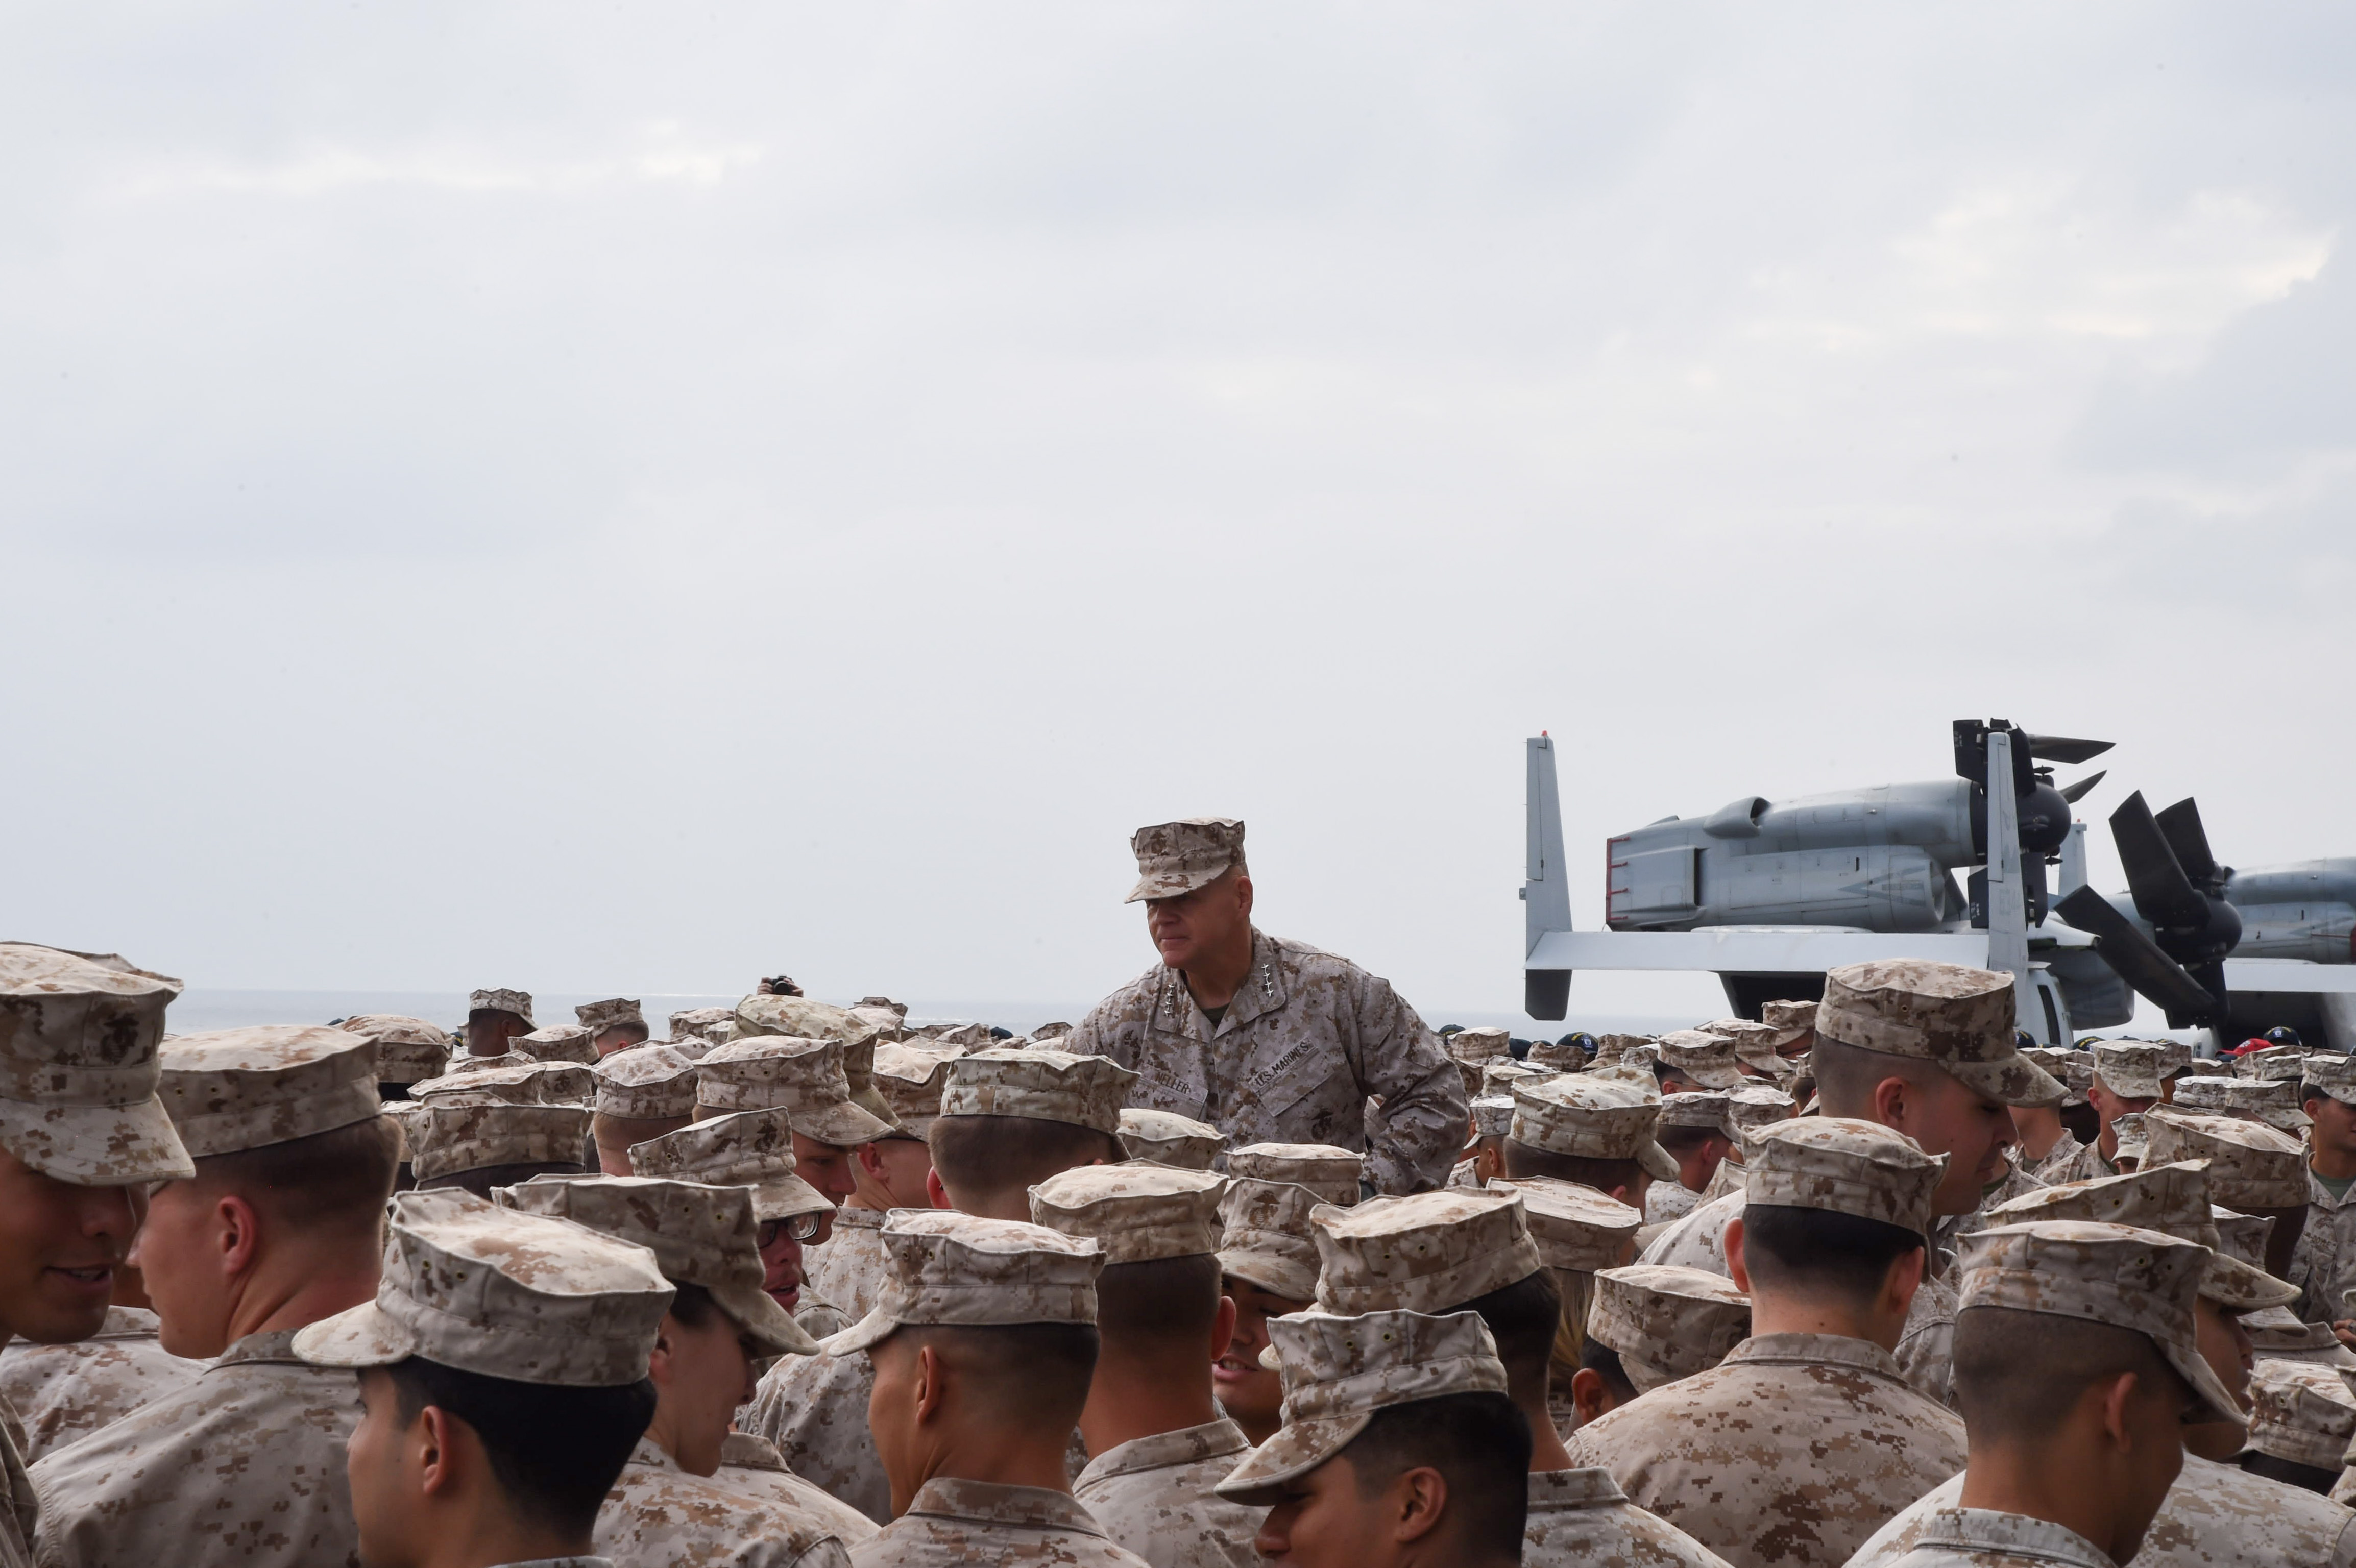 U.S. Marine Corps Gen. Robert B. Neller, 37th Commandant of the Marine Corps, speaks to Marines with the 11th Marine Expeditionary Unit and Sailors assigned to the amphibious assault ship USS Makin Island (LHD 8), on the flight deck of the Makin Island, in the Gulf of Aden, Dec. 23, 2016. The Commandant and Sergeant Major of the Marine Corps conducted a holiday tour to visit Marines and Sailors stationed overseas and forward deployed. (U.S. Air National Guard photo by Staff Sgt. Penny Snoozy)